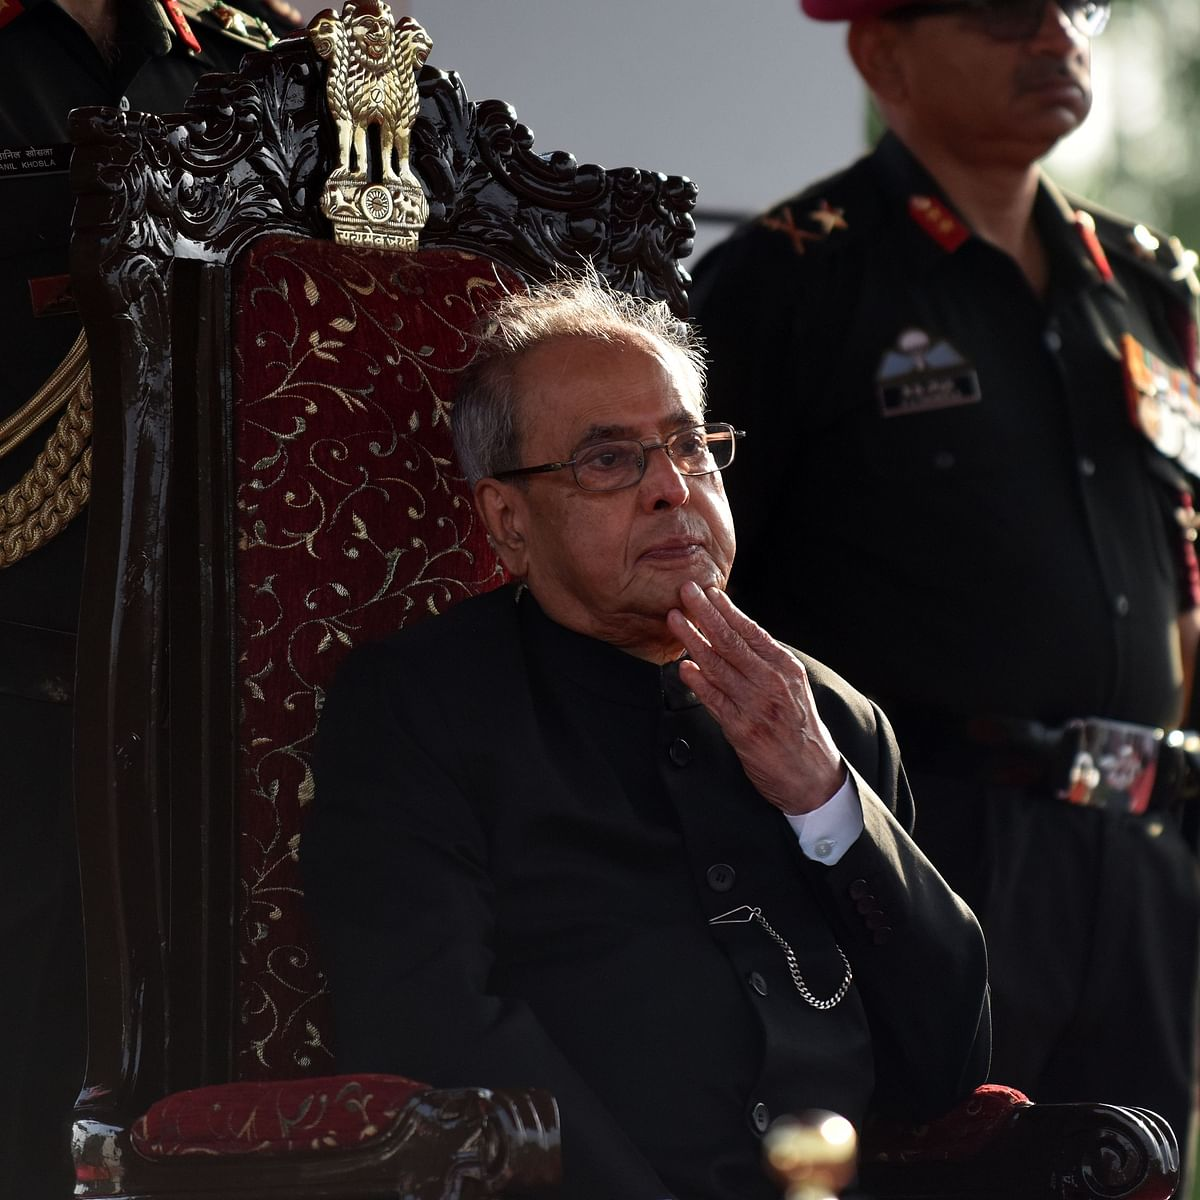 When Pranab Mukherjee wanted to be a horse at Rasthrapati Bhavan